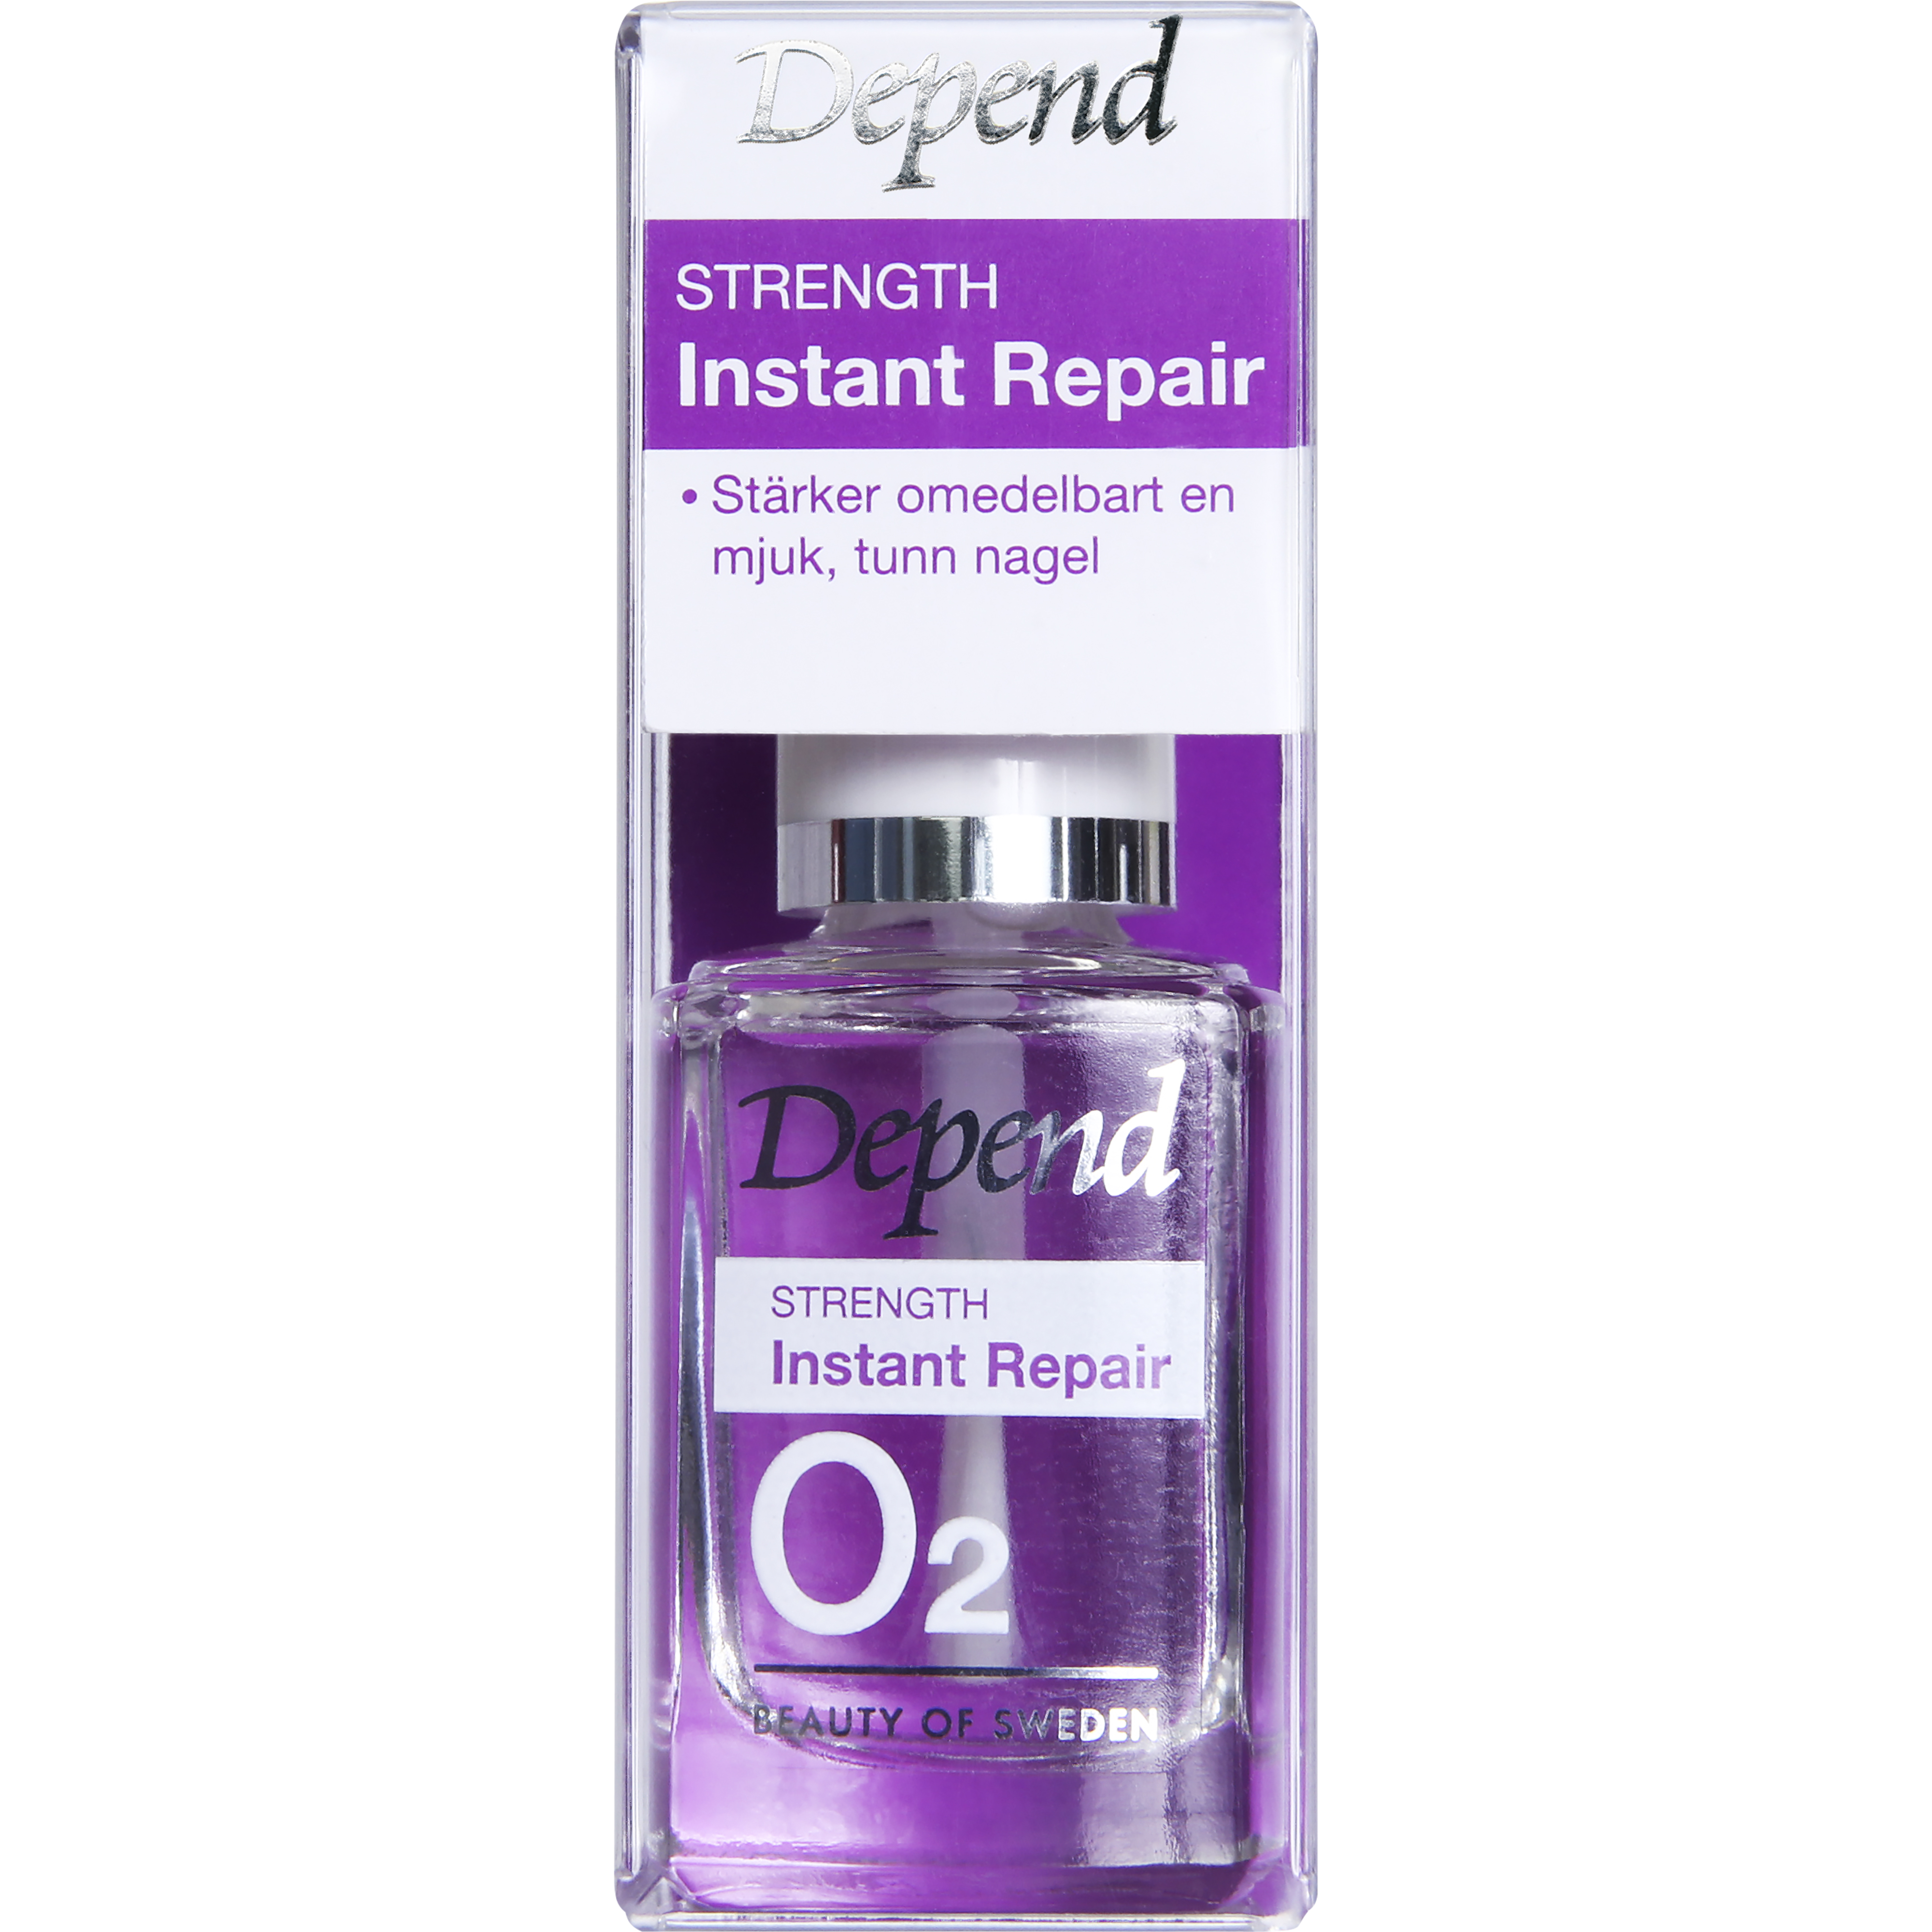 Strength Instant Repair